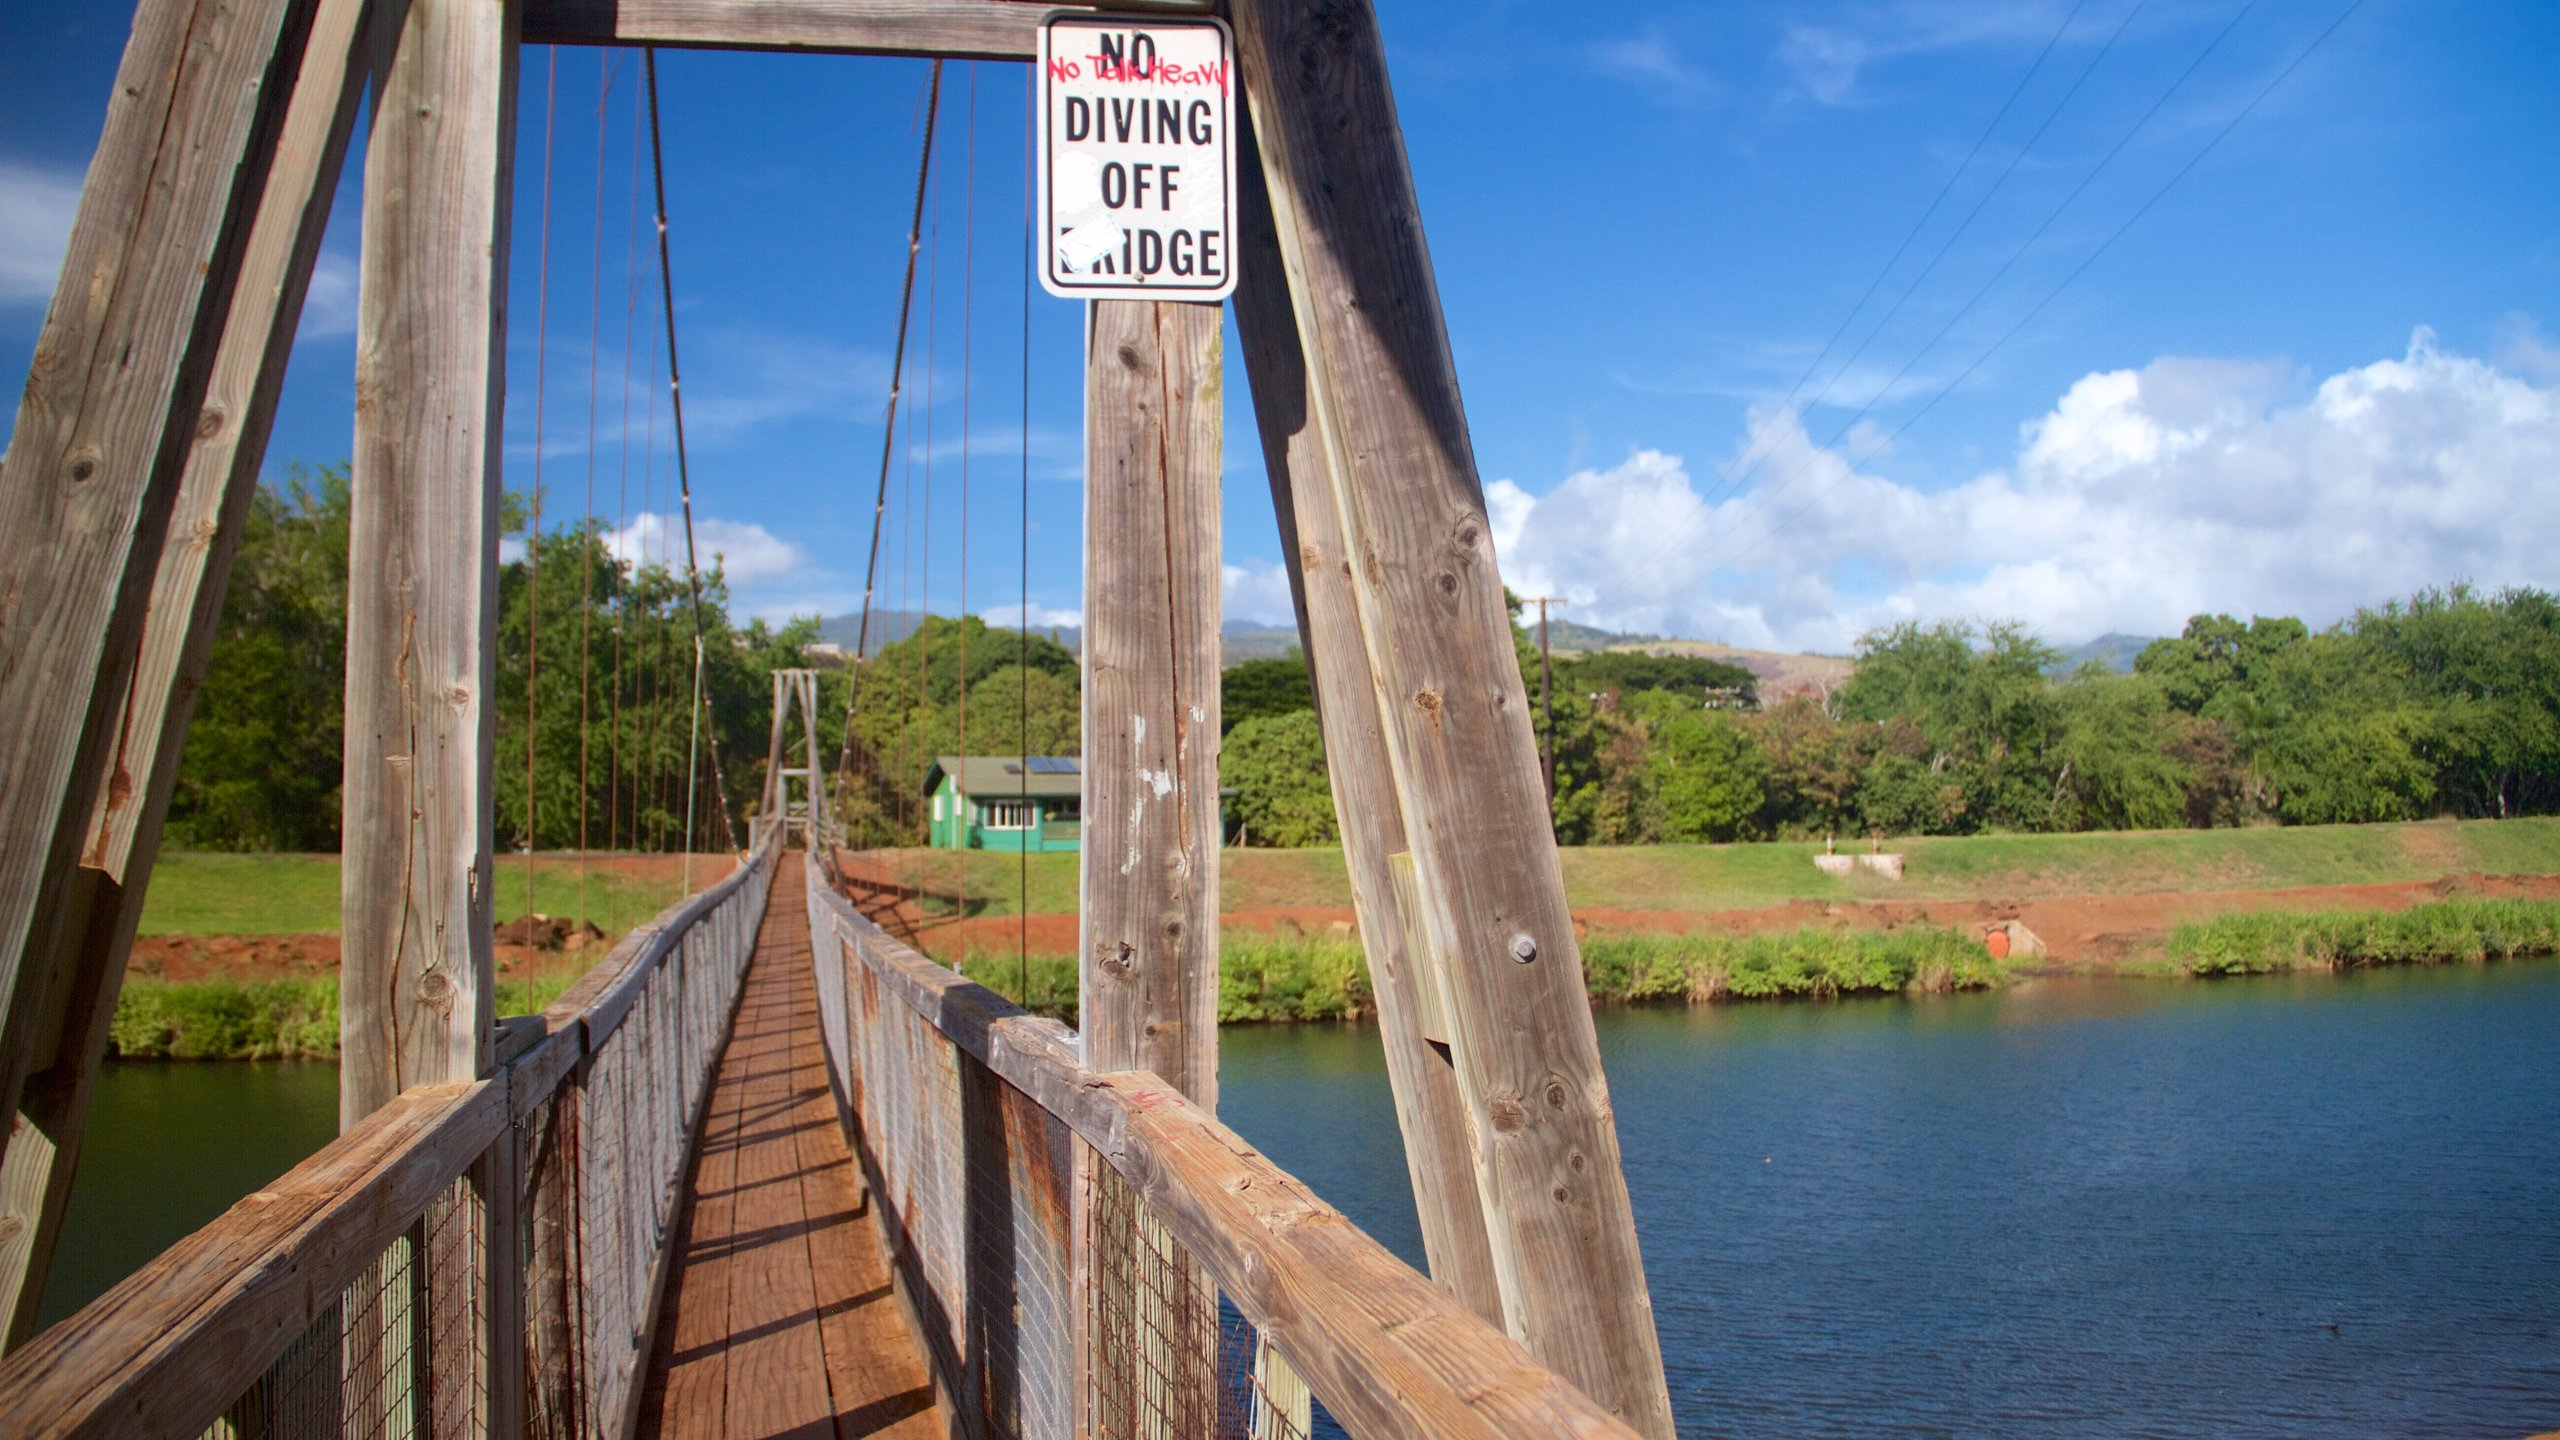 10 Best Hotels Closest To Swinging Bridge In Hanapepe For